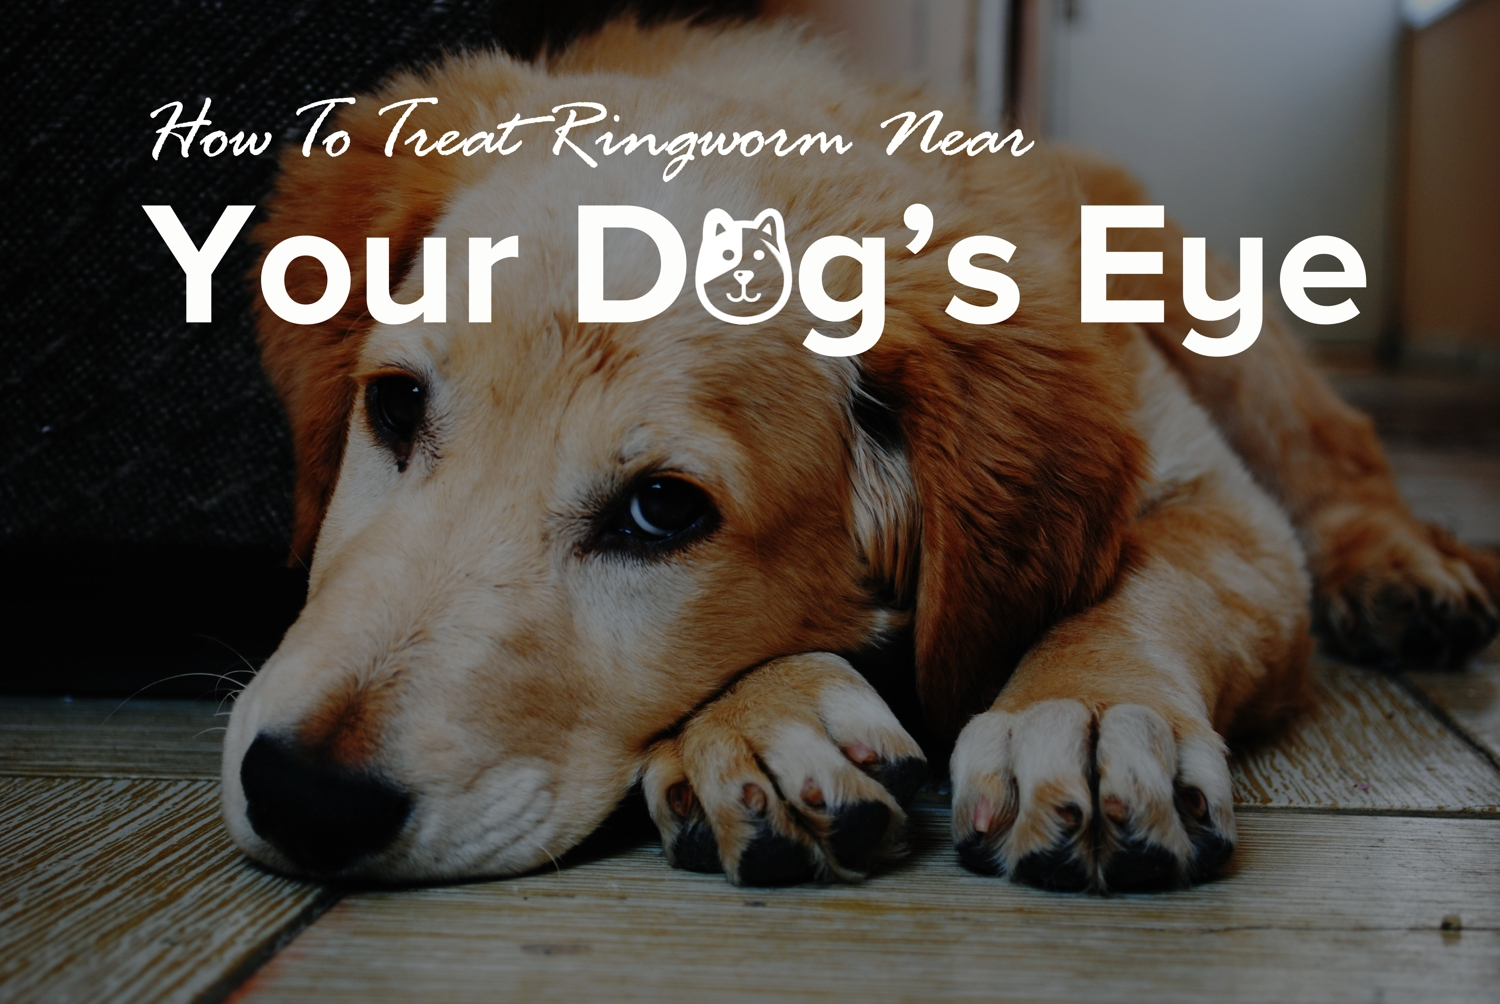 How To Treat Ringworm Near Your Dog's Eye